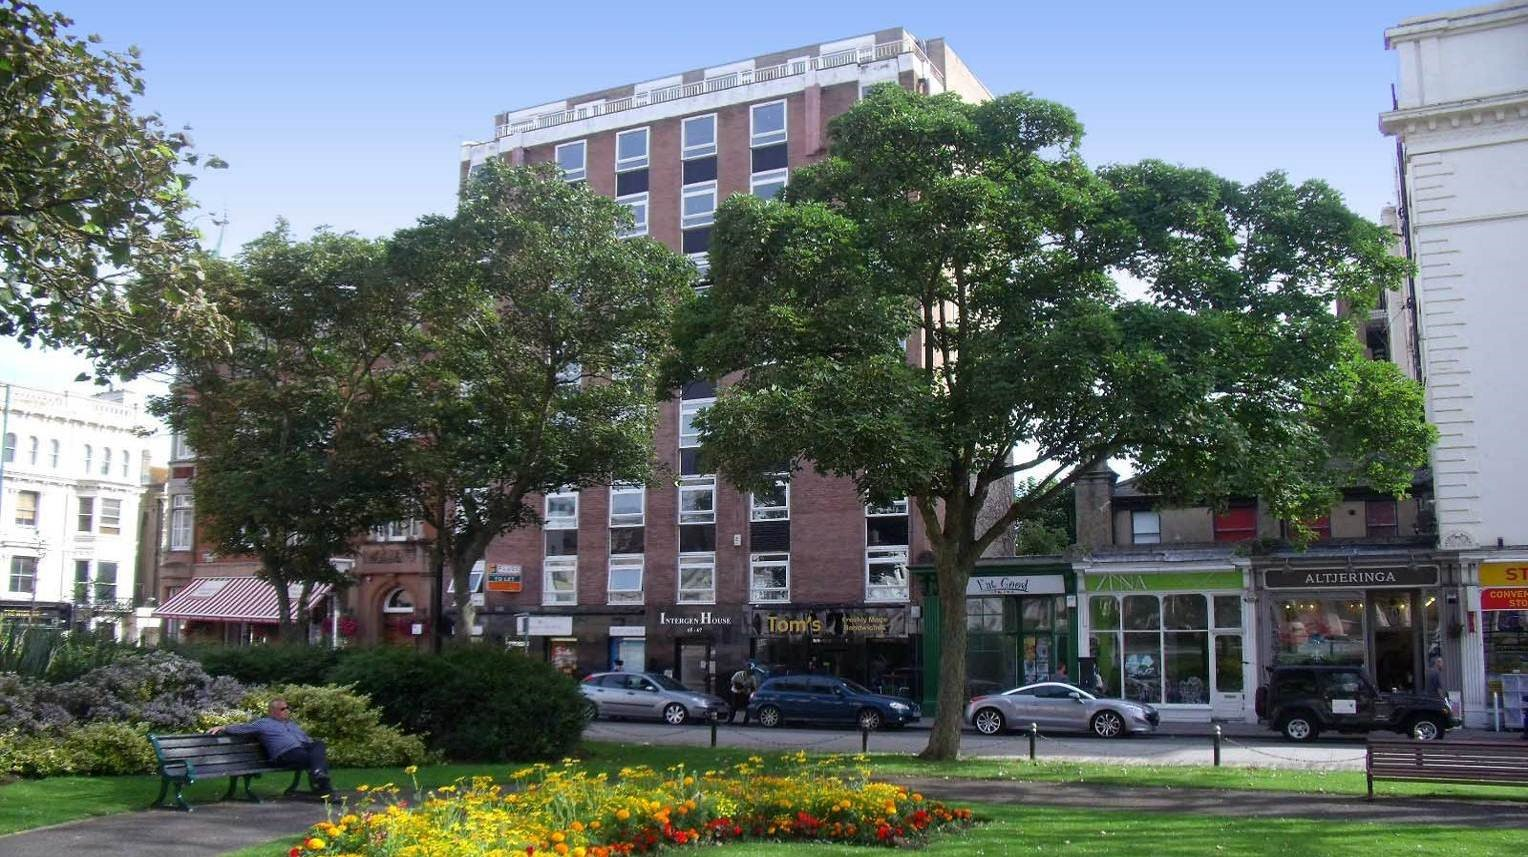 New Letting Completed - Intergen House, 65-67 Western Road, Hove